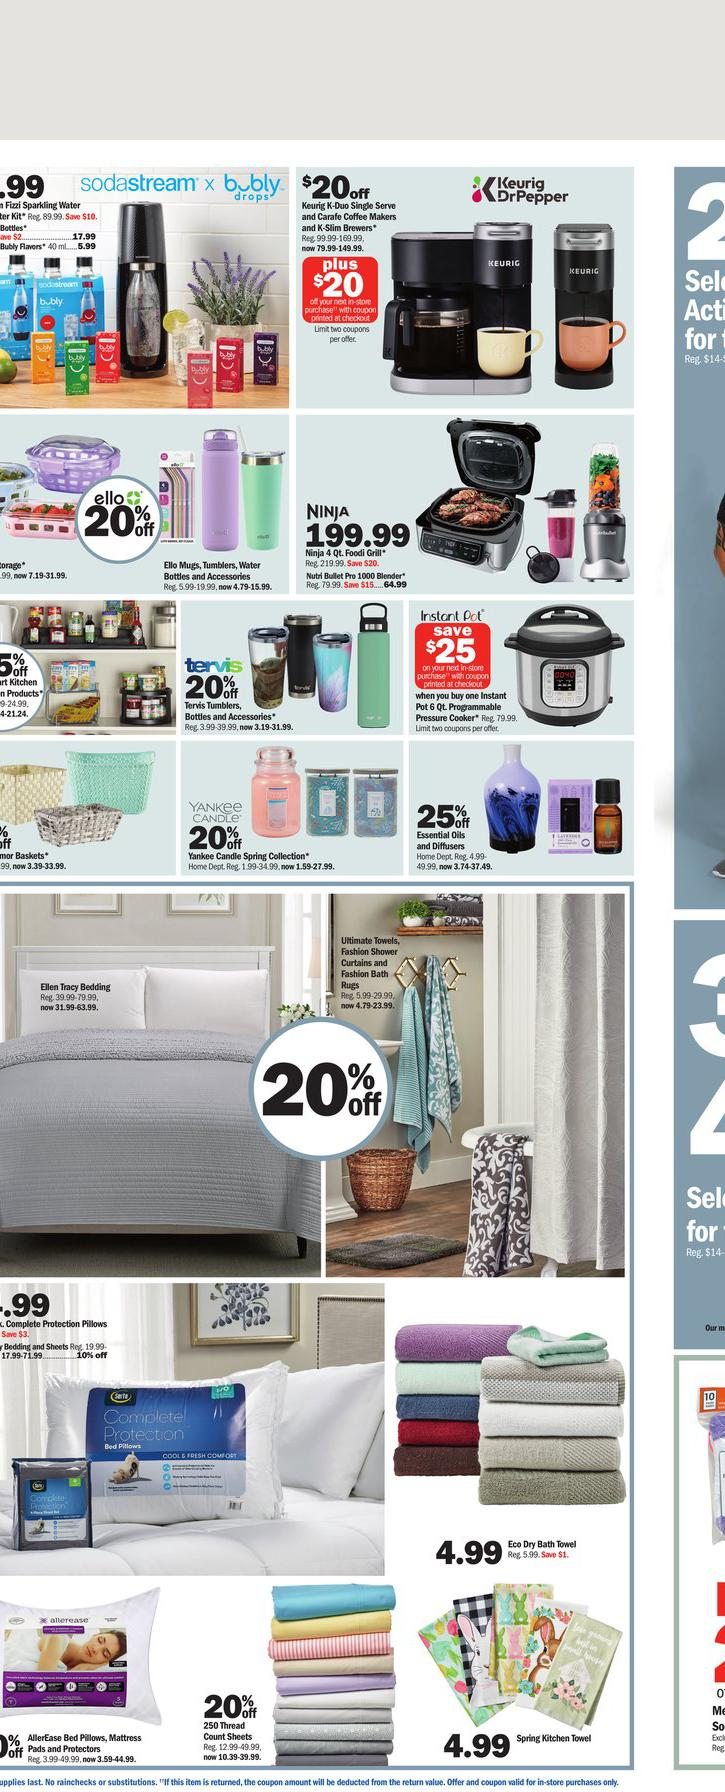 21.02.2021 Meijer ad 21. page